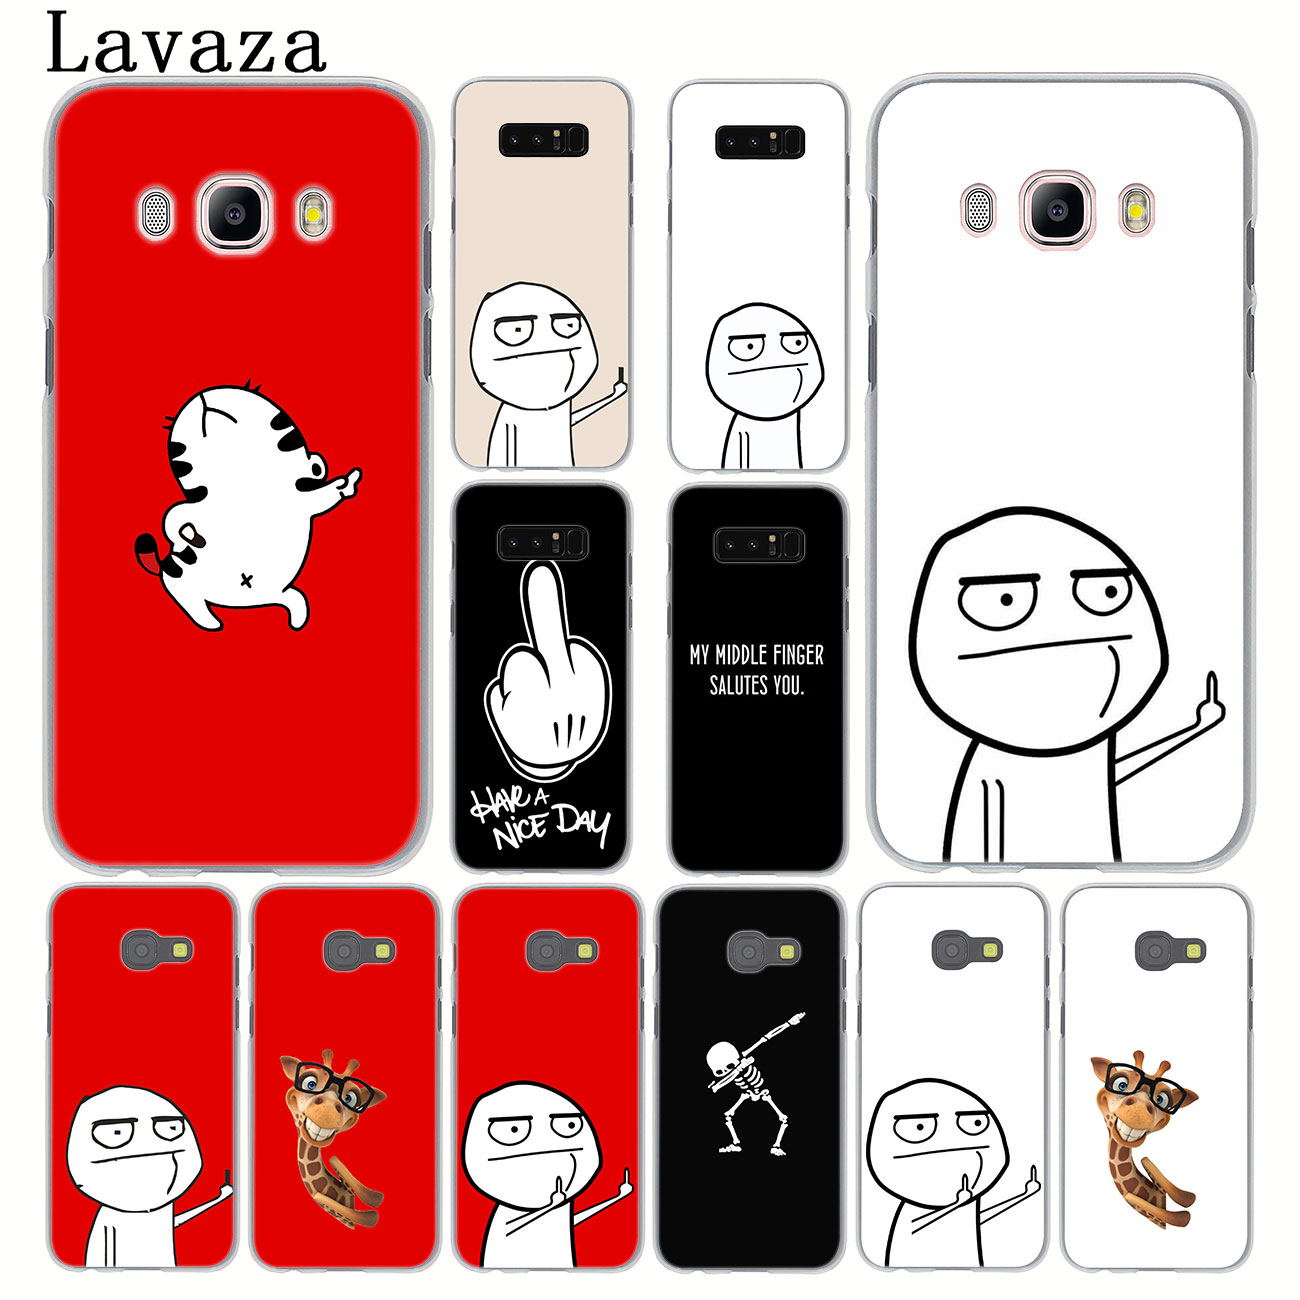 meme face Middle Finger Funny Cartoon Lovers <font><b>Case</b></font> for <font><b>Samsung</b></font> Galaxy Note 10 9 8 A9 A8 A7 A6 Plus 2018 <font><b>A5</b></font> A3 2015 <font><b>2016</b></font> 2017 A2 image